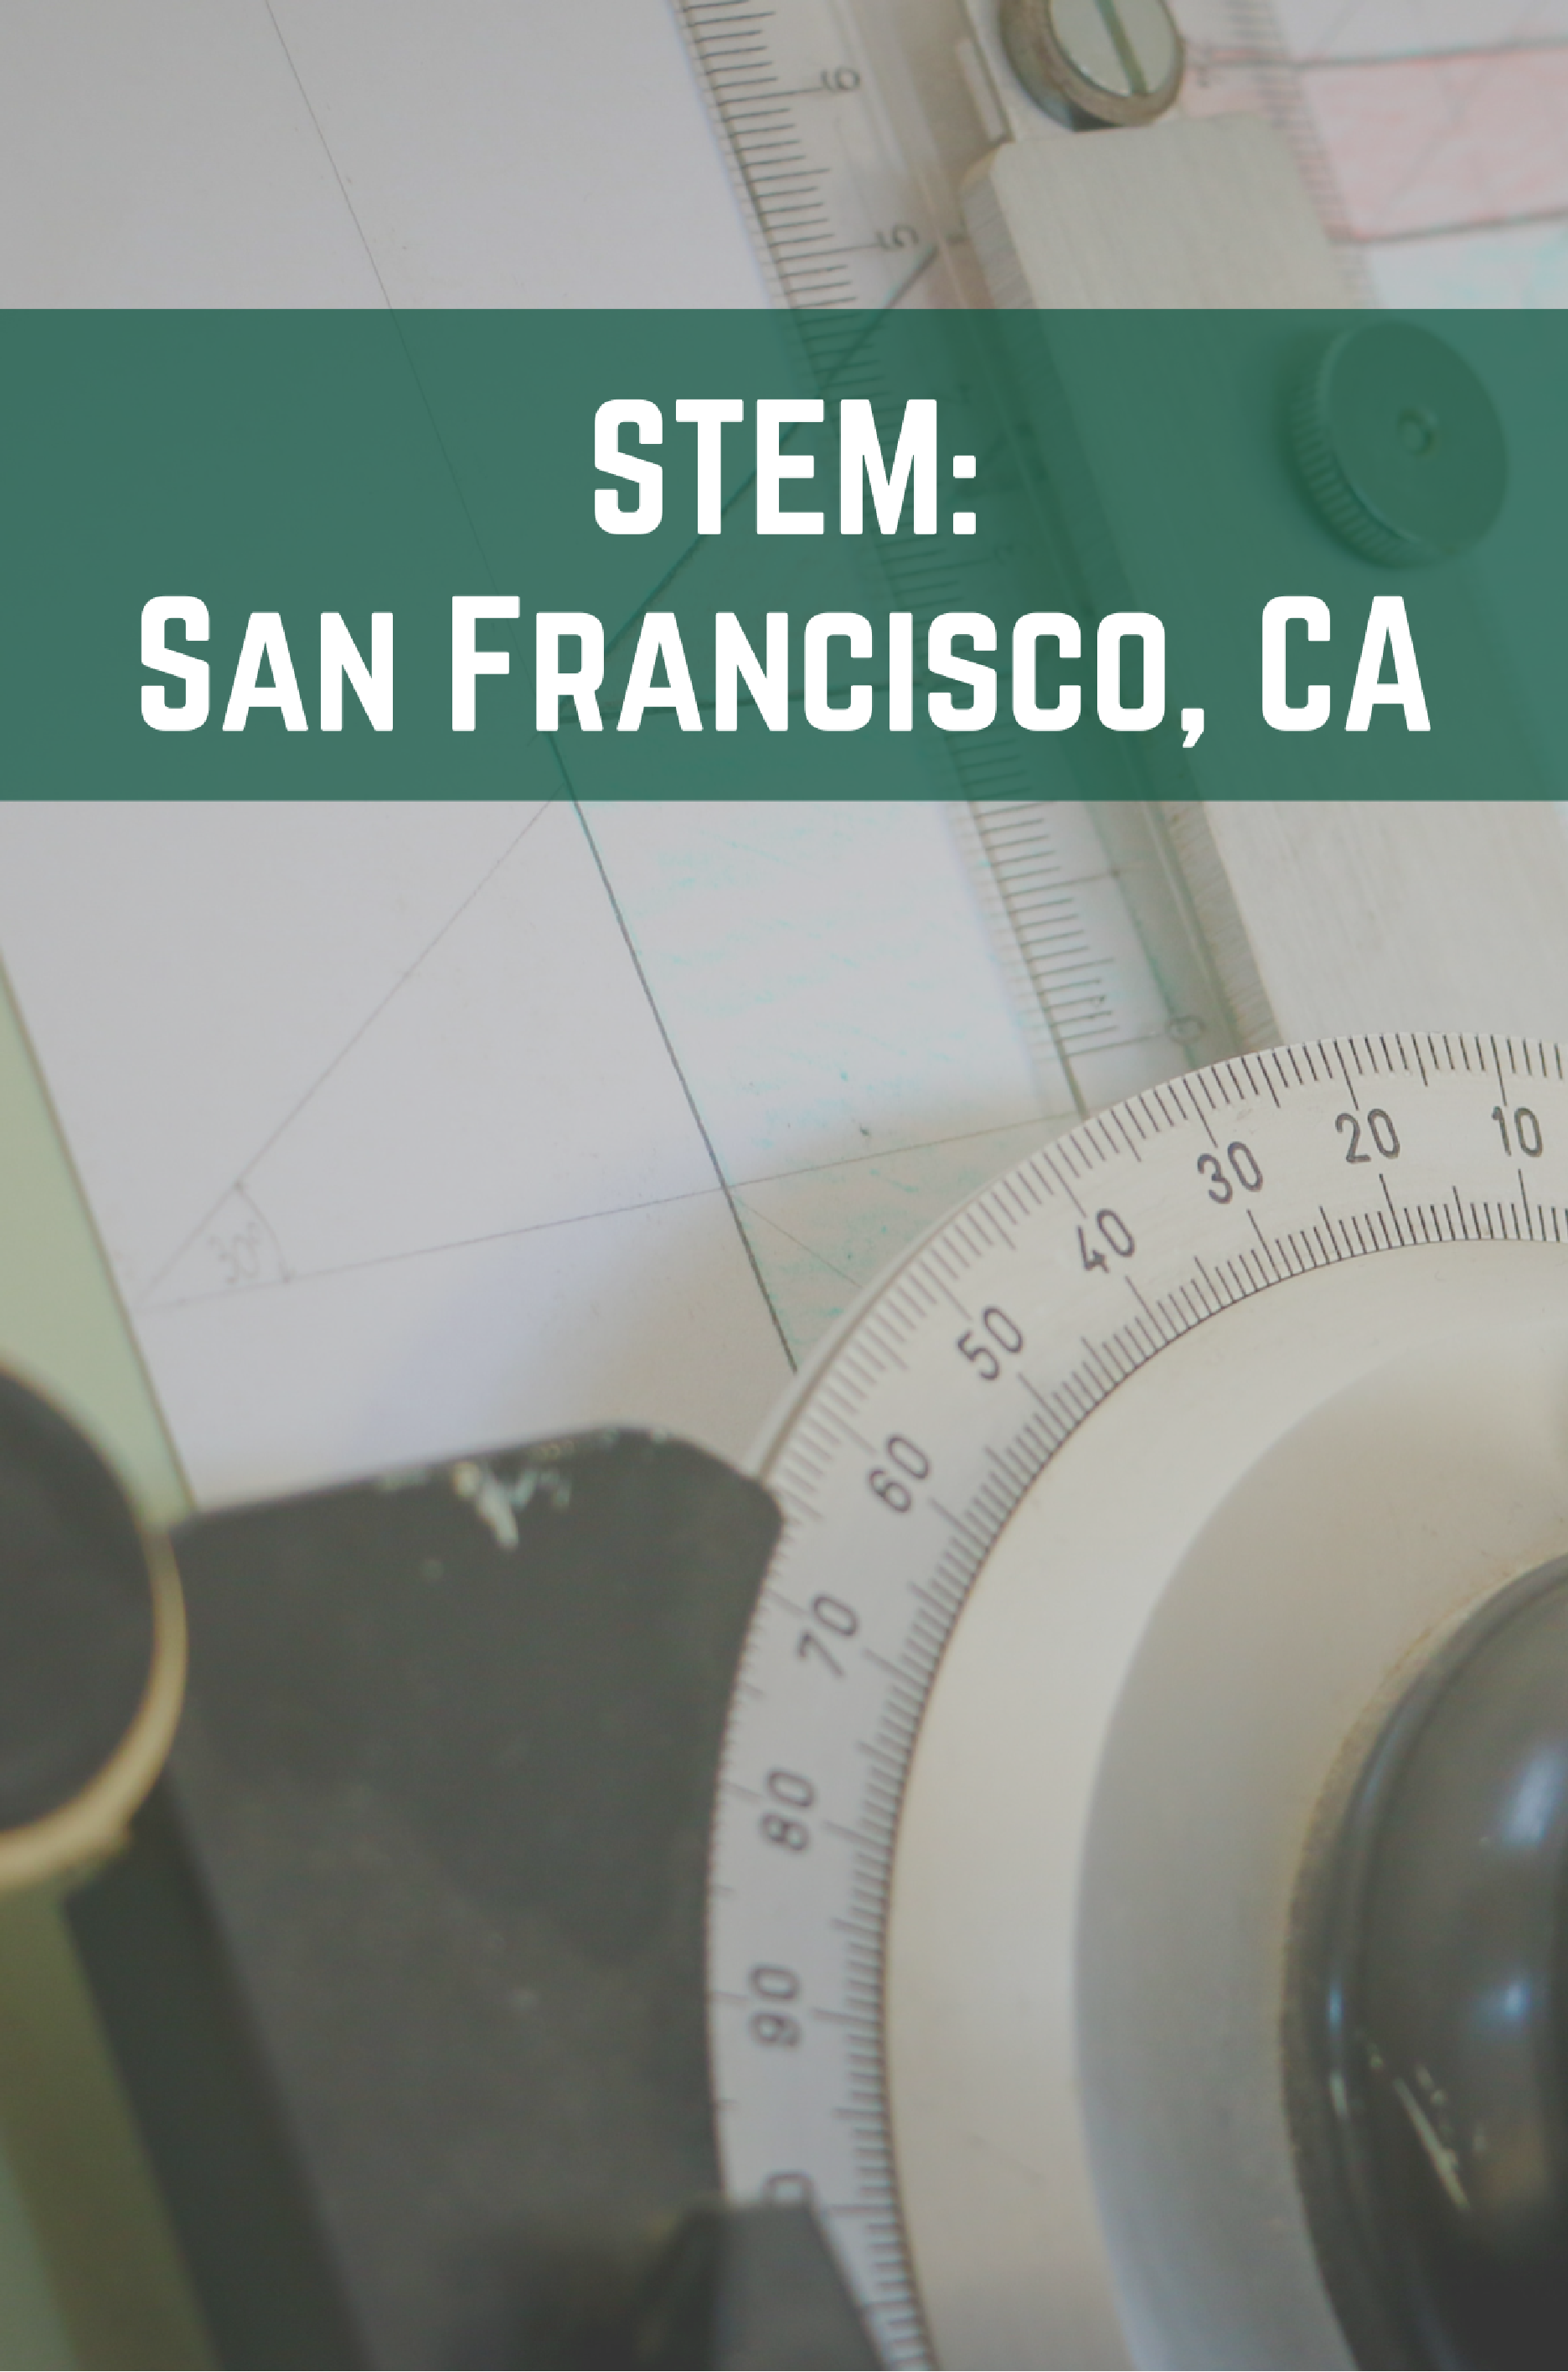 STEM: San Francisco